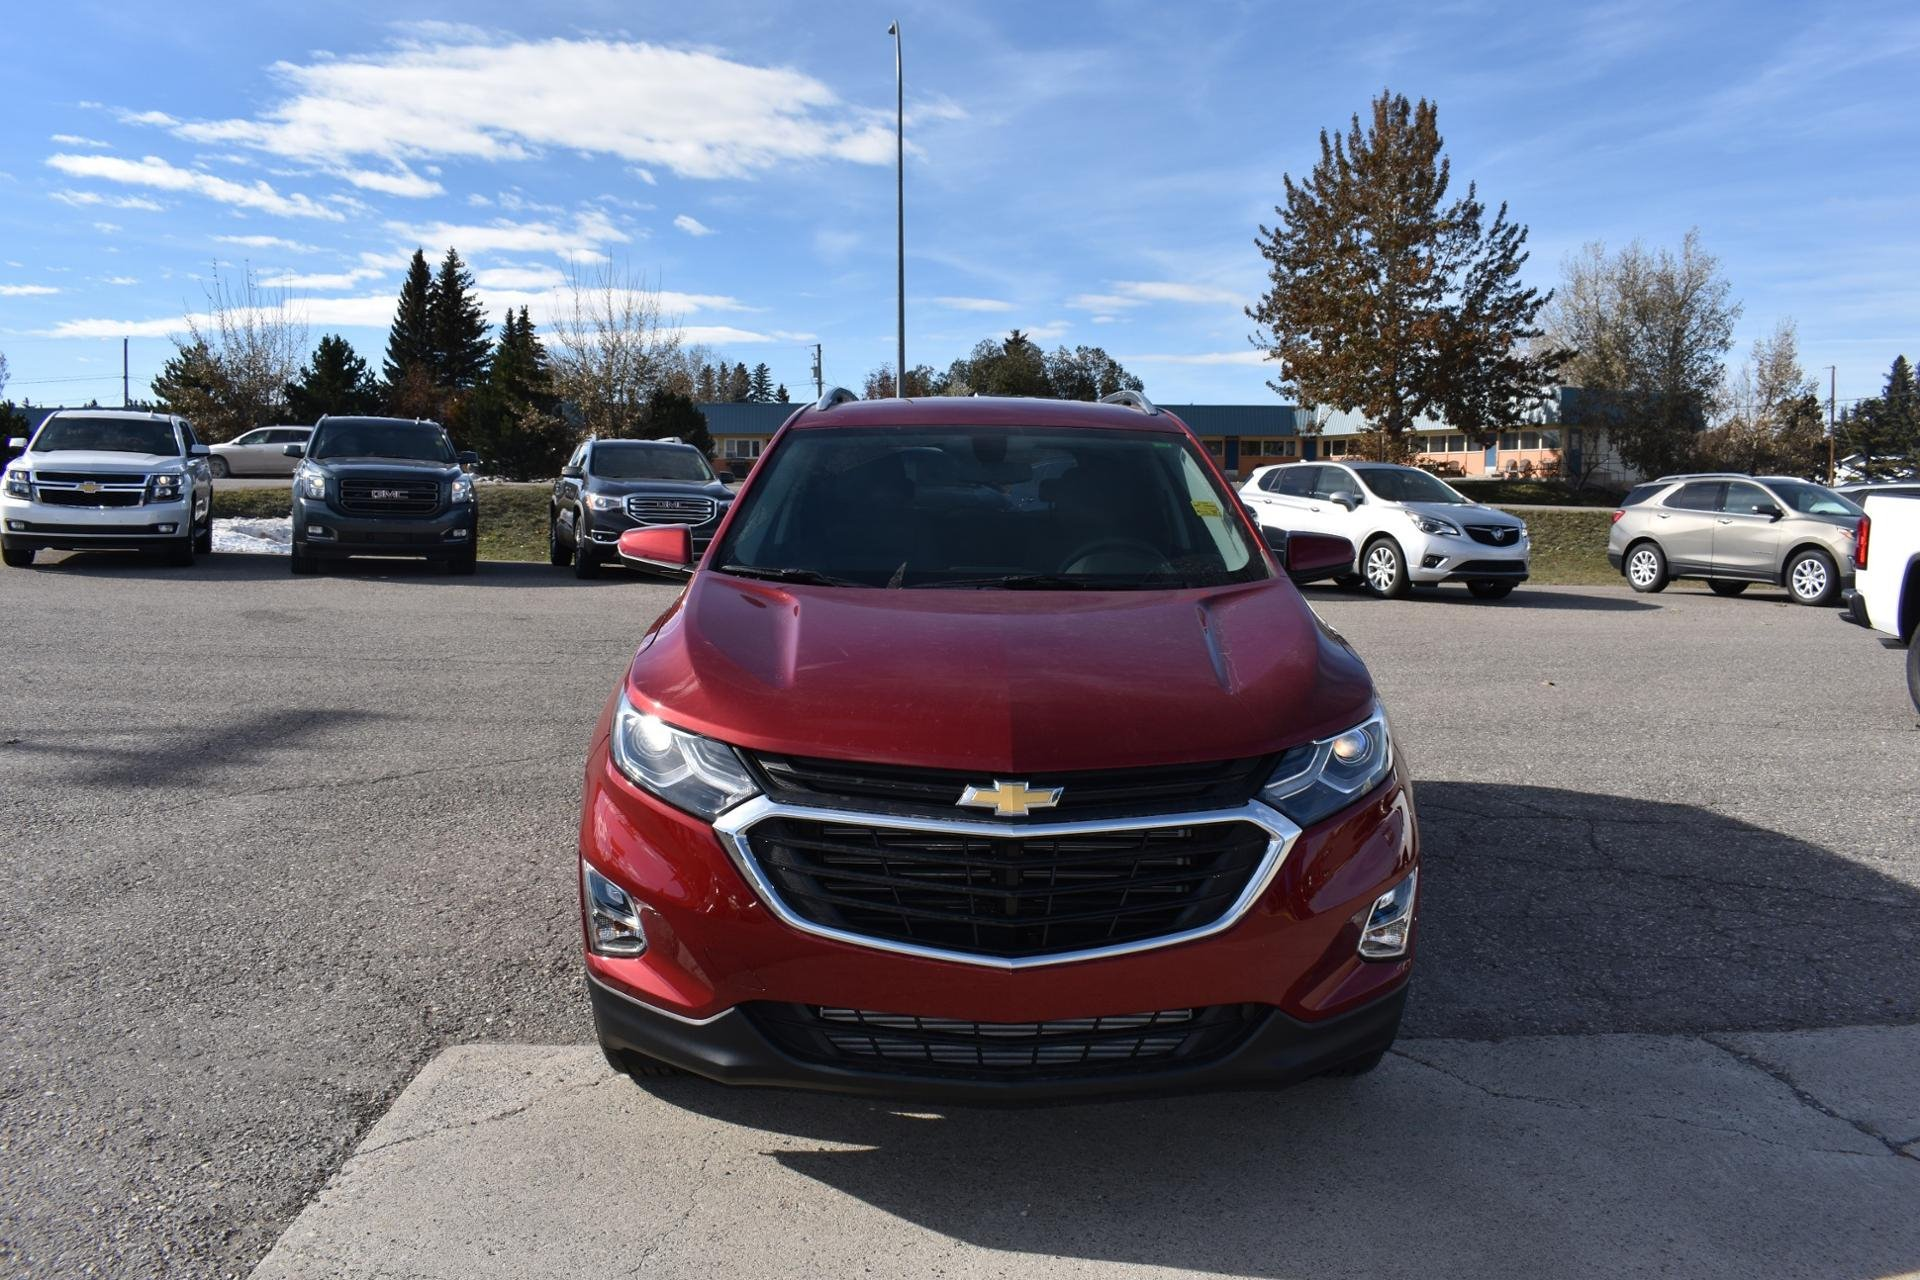 New 2019 Chevrolet-Equinox LS Equinox LS for sale $25,900 at M and V Leasing in Brooklyn NY 11223 1